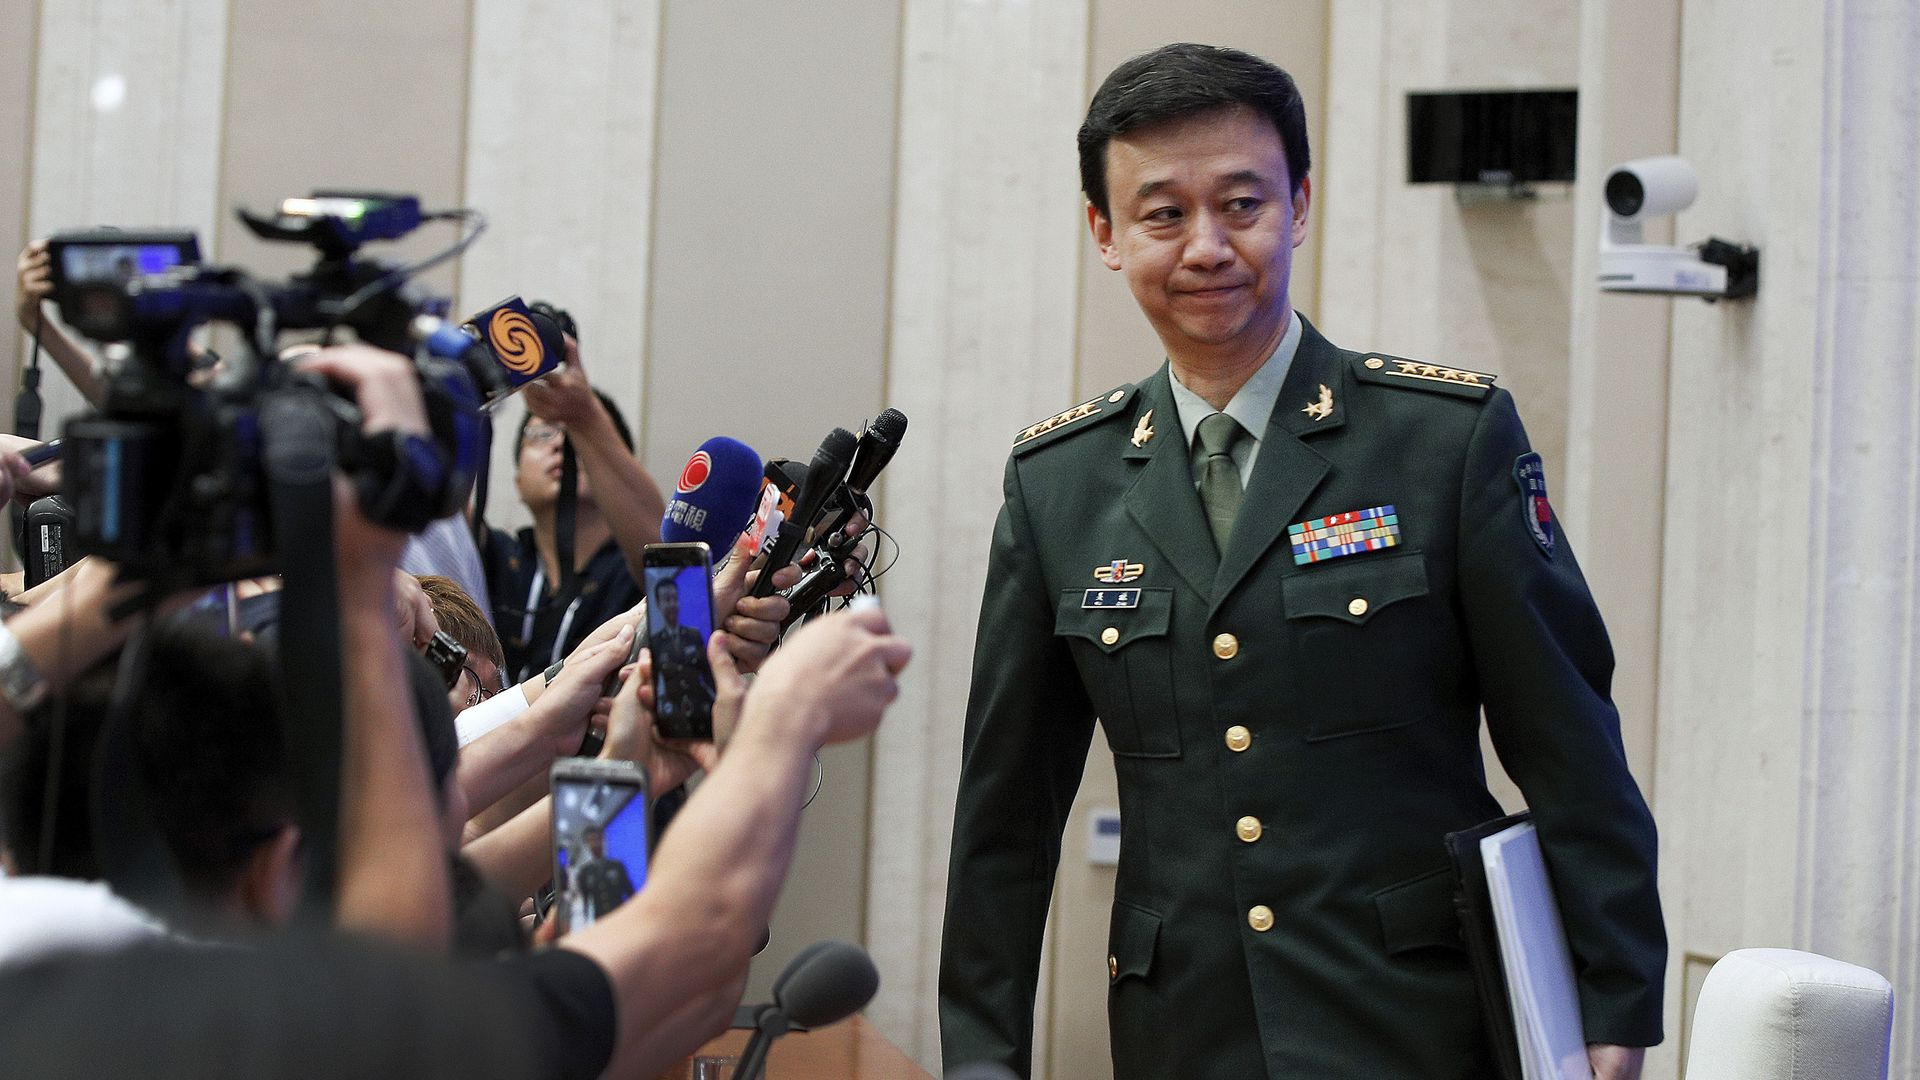 China's Defense Ministry spokesman Wu Qian leaves as journalists are asking question at a press conference at the State Council Information Office in Beijing, Wednesday, July 24.